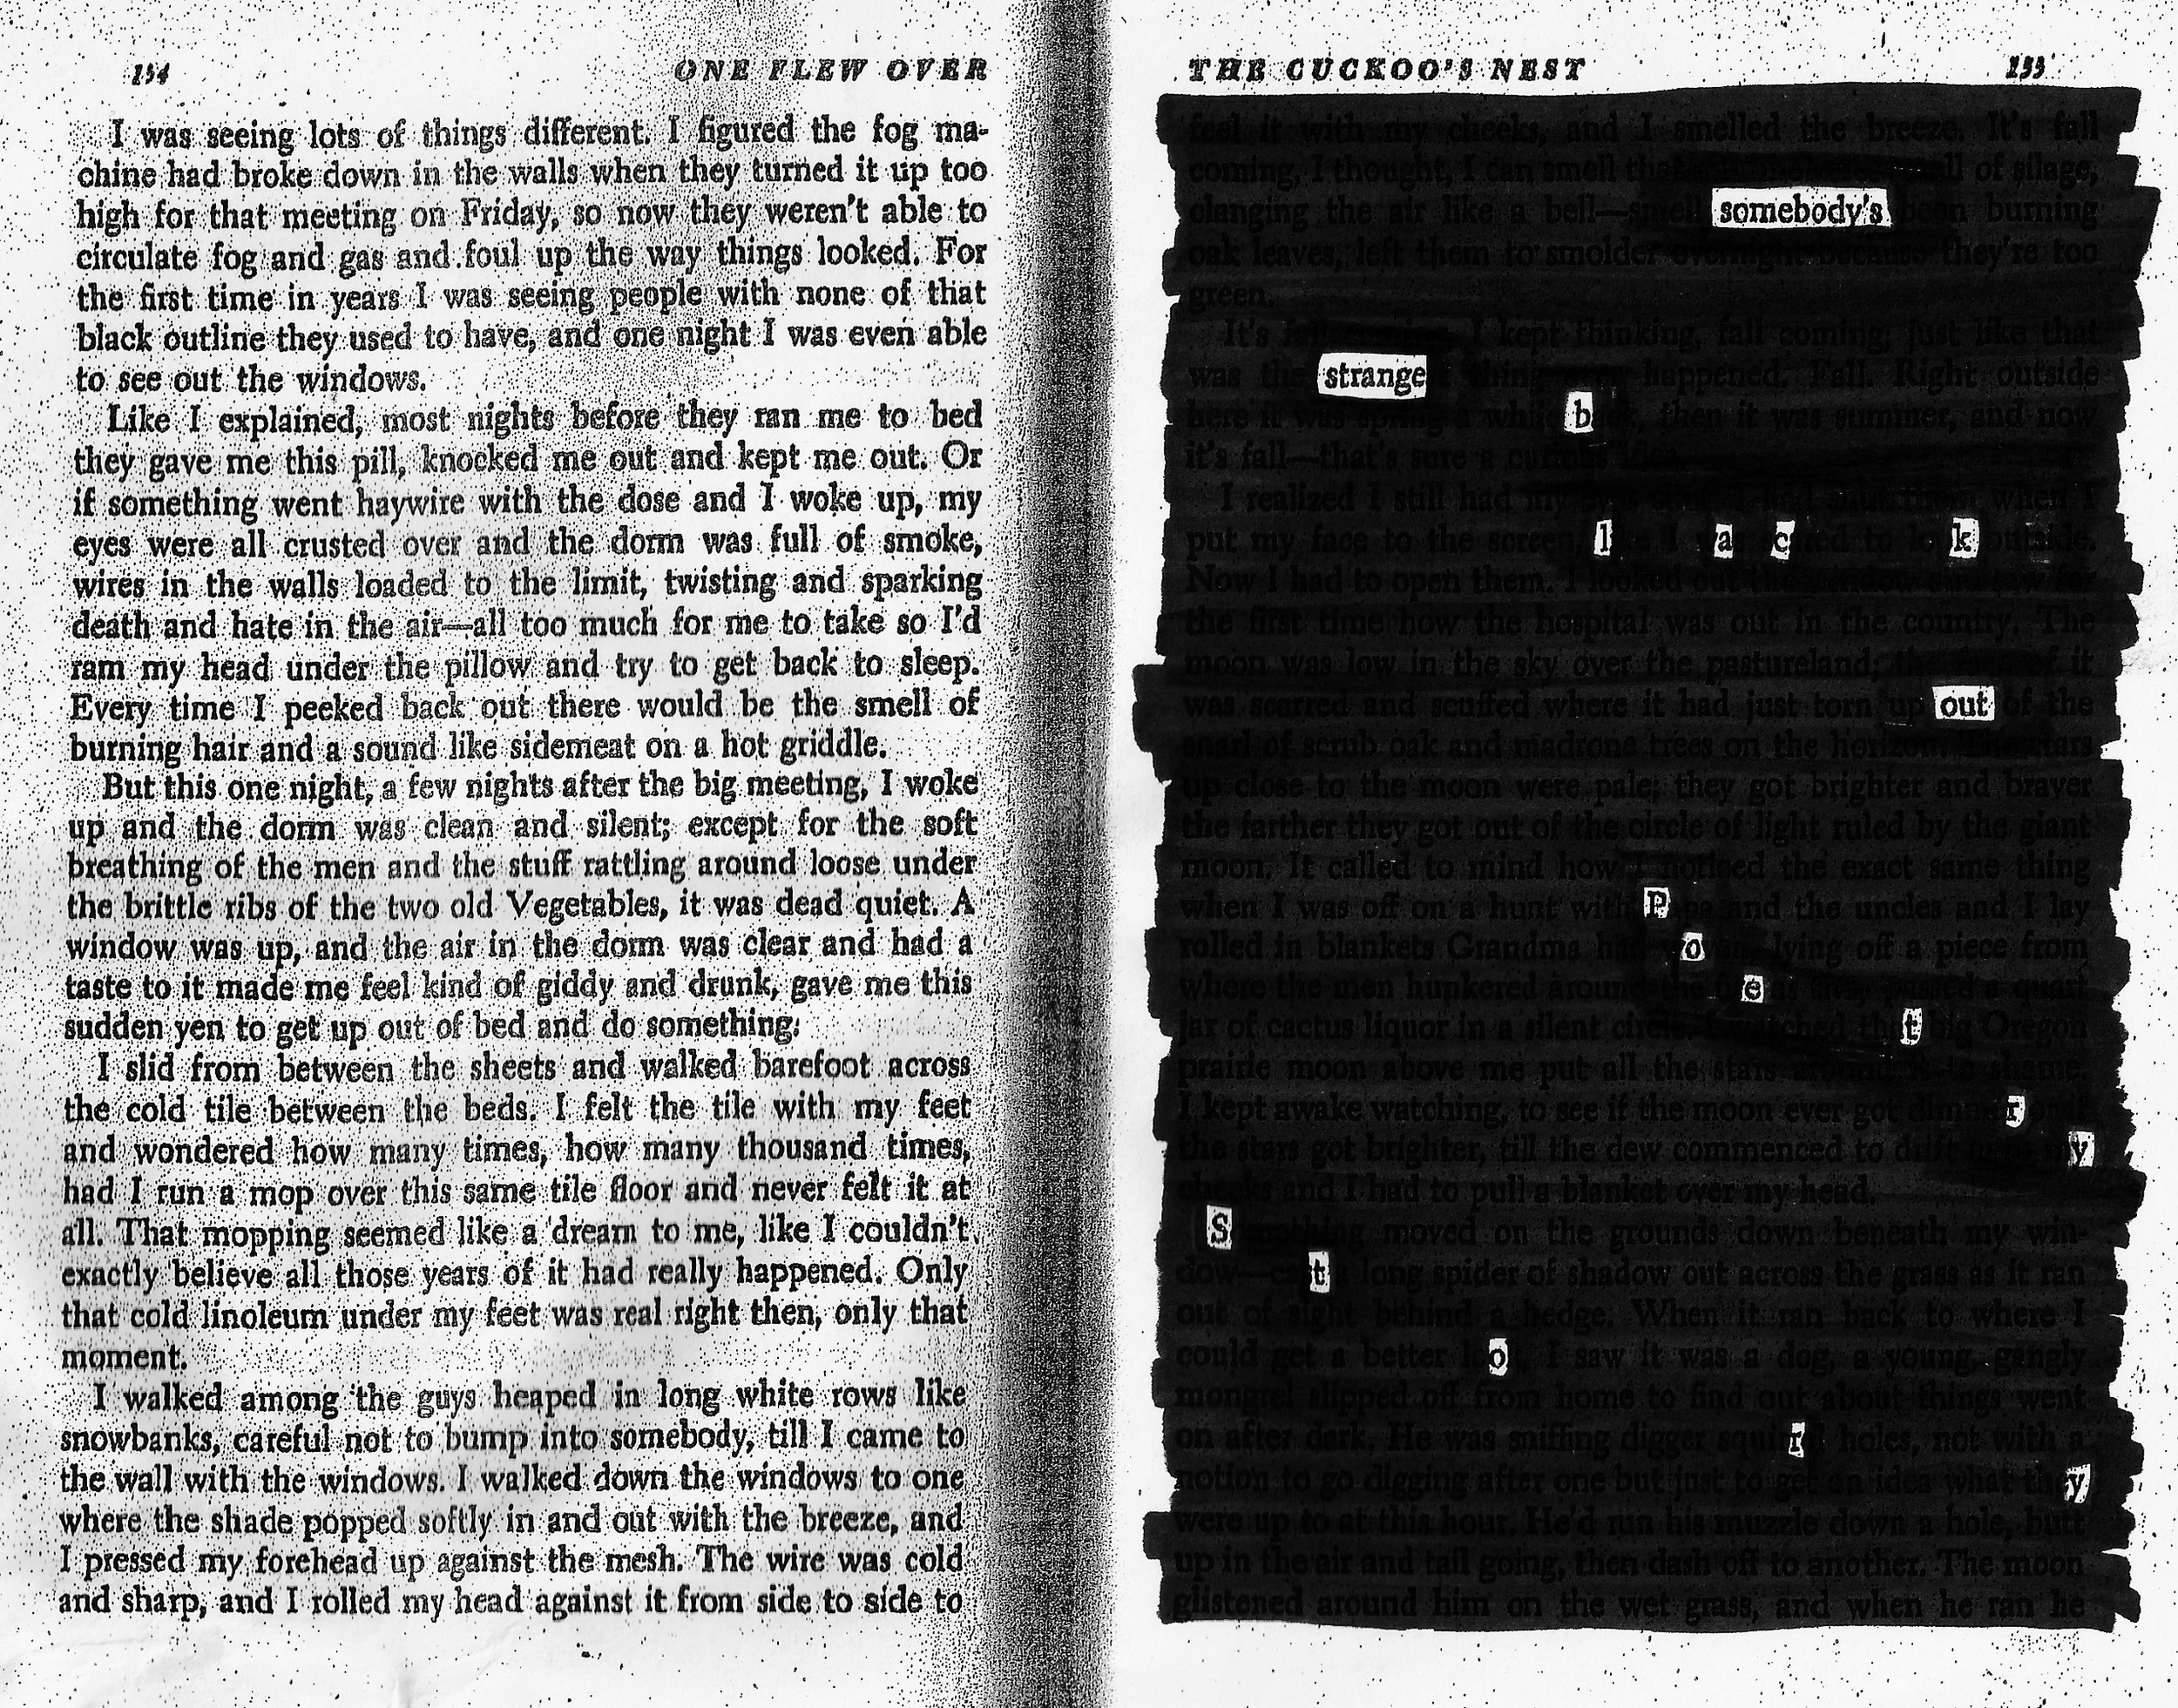 I distributed a spread from Ken Kesey's  One Flew Over the Cuckoo's Nest  to several people I met on the streets of New York and asked them to make blackout poems for me. I took two pictures of each person. The story is a collaborative effort between myself and the strangers who participated in the project.